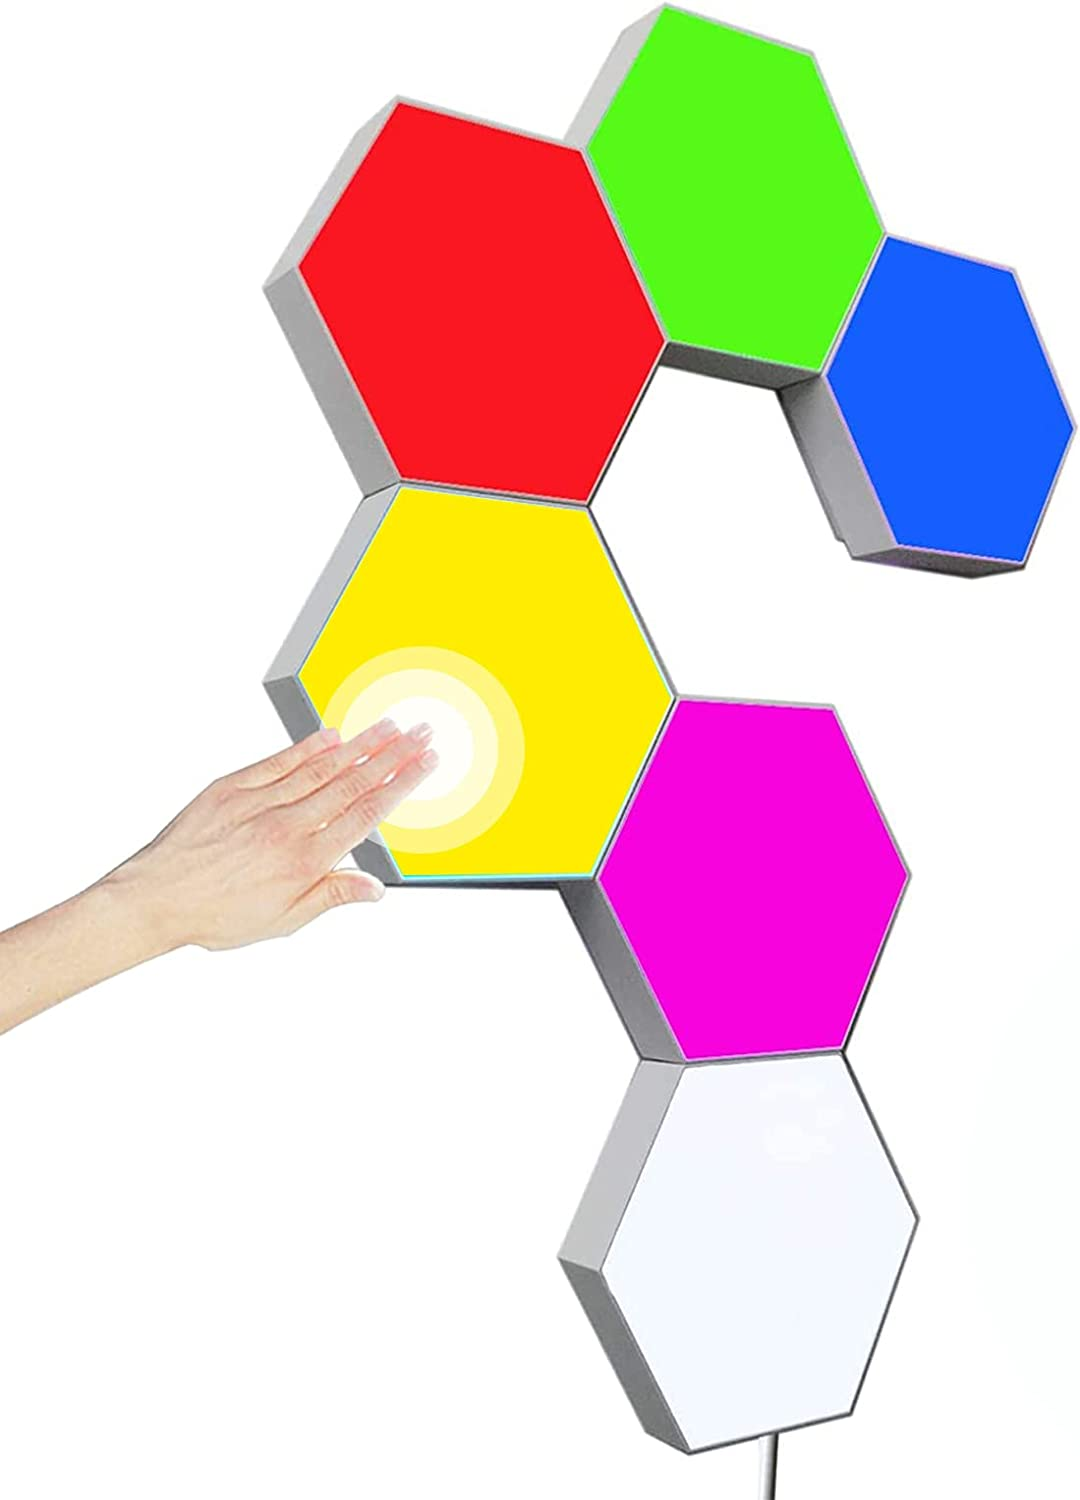 Hexagon Wall Lights Touch Control Gaming Lights, DIY RGB Creative Geometry Led Lights Panel with AC adapter for Gaming Setup & Home Office Hotel Bar Decoration,Gifts(6 colors)